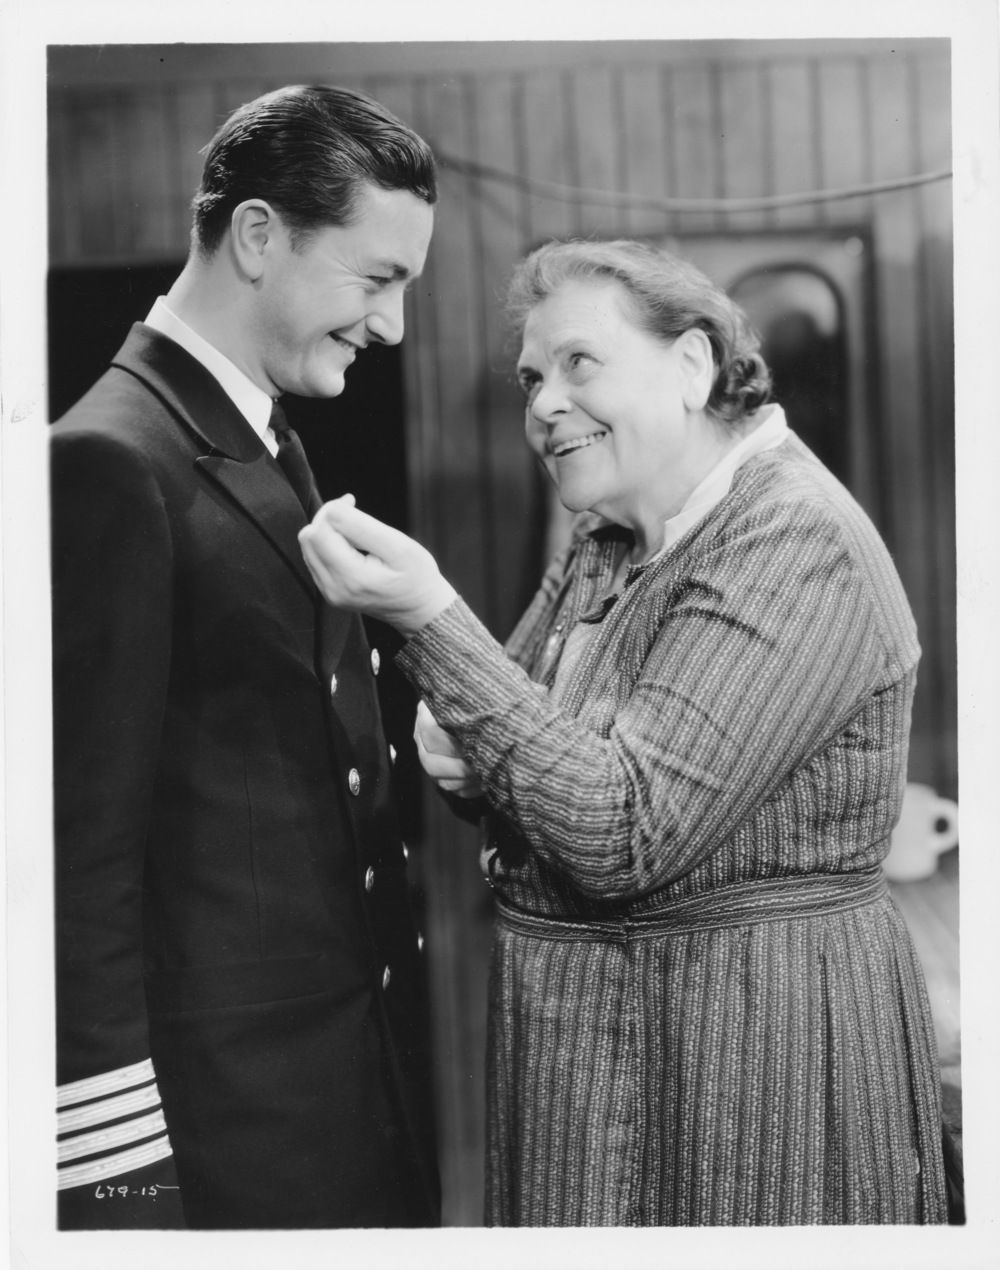 Marie Dressler and Robert Young in  Tugboat Anni e  Photographic Reproduction  1932 Marie Dressler Foundation Collection